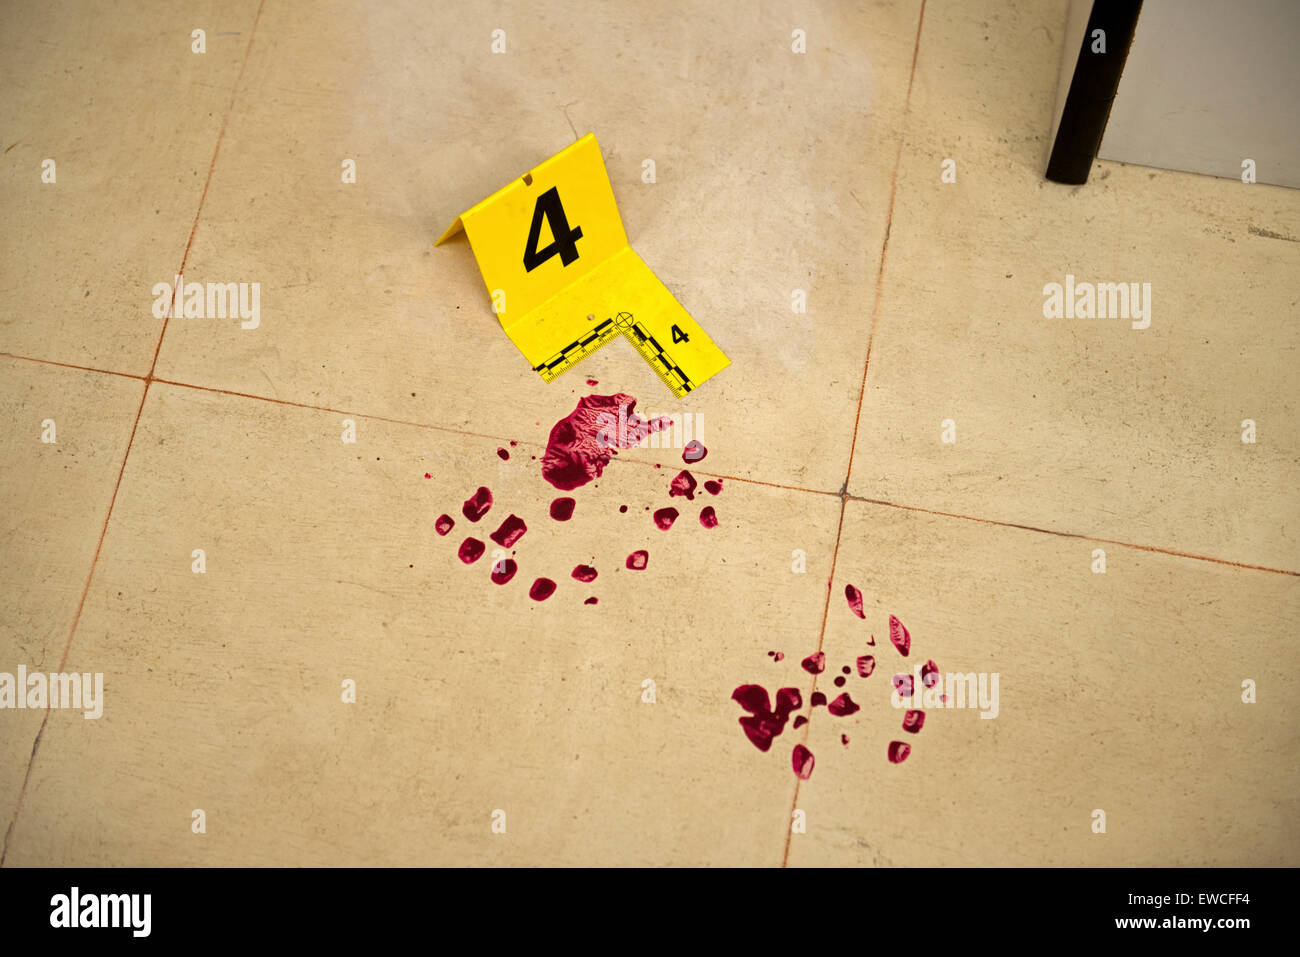 Evidence marker and blood on floor - Stock Image